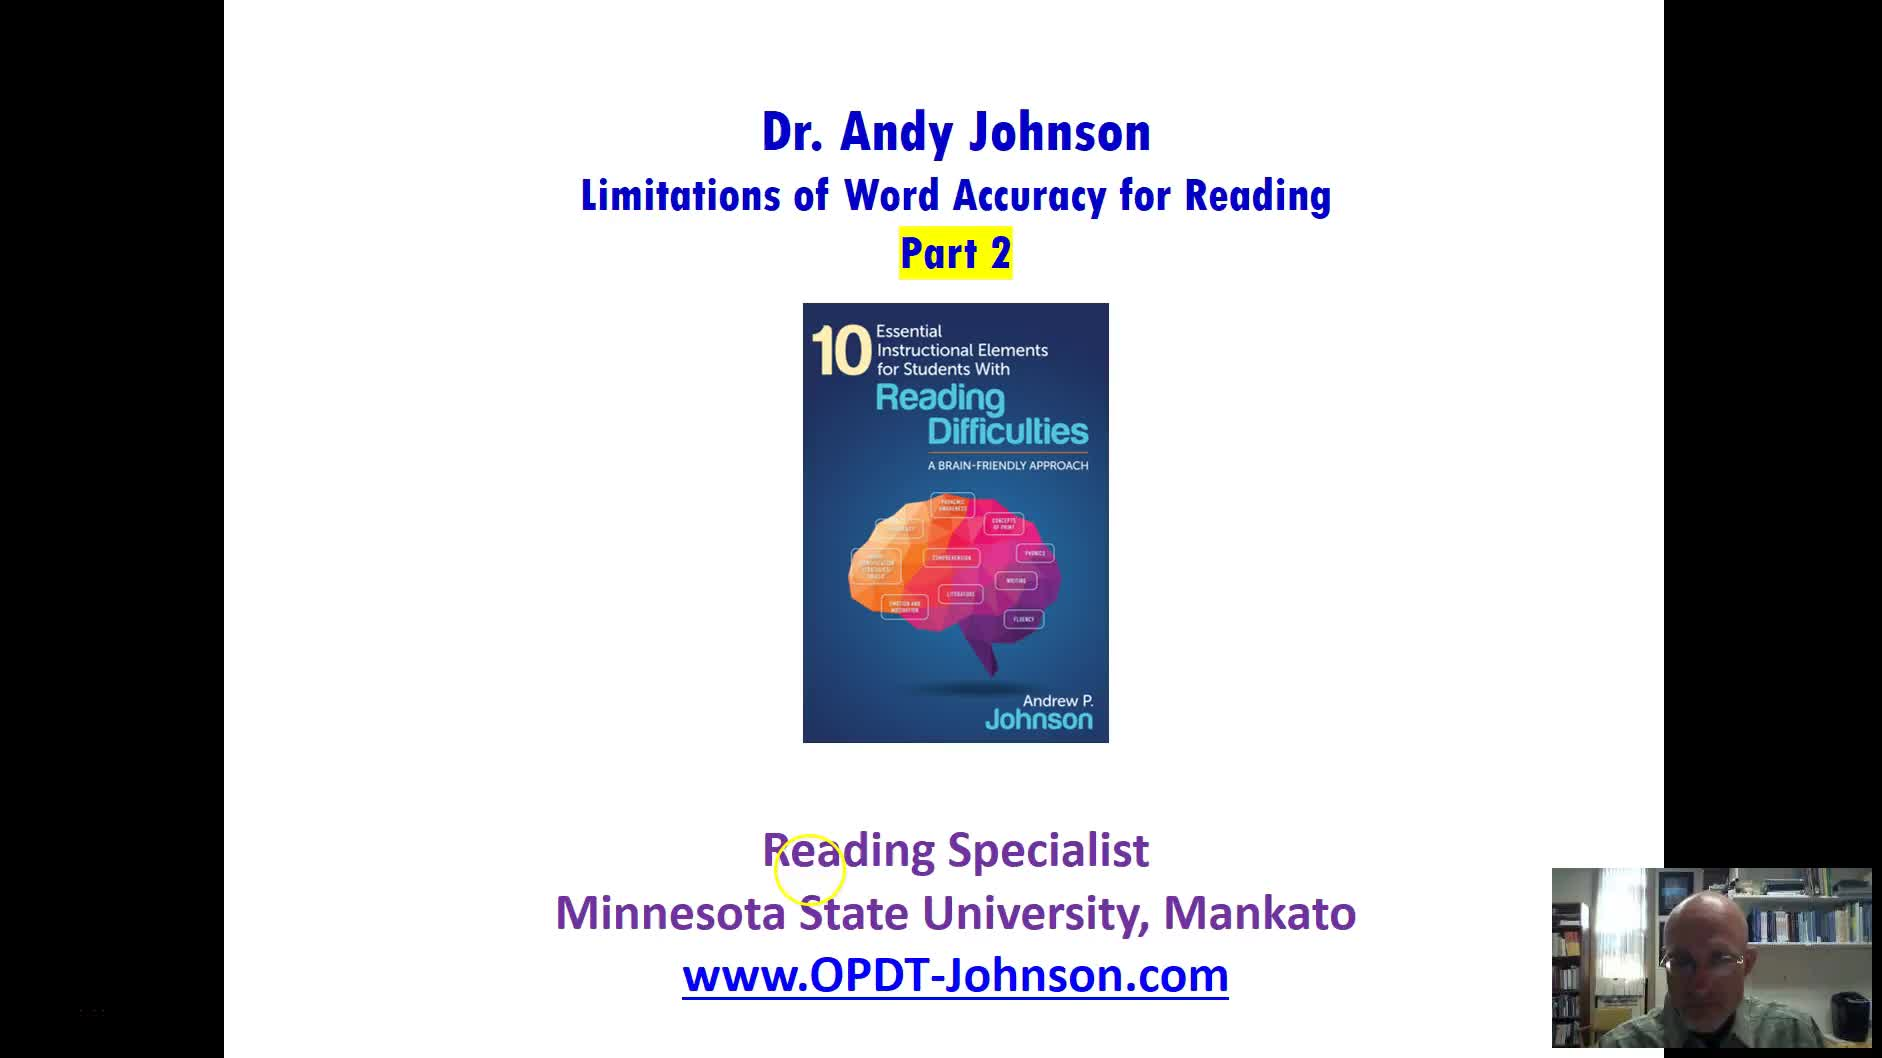 RESEARCH: LIMITATIONS OF WORD ACCURACY FOR READING